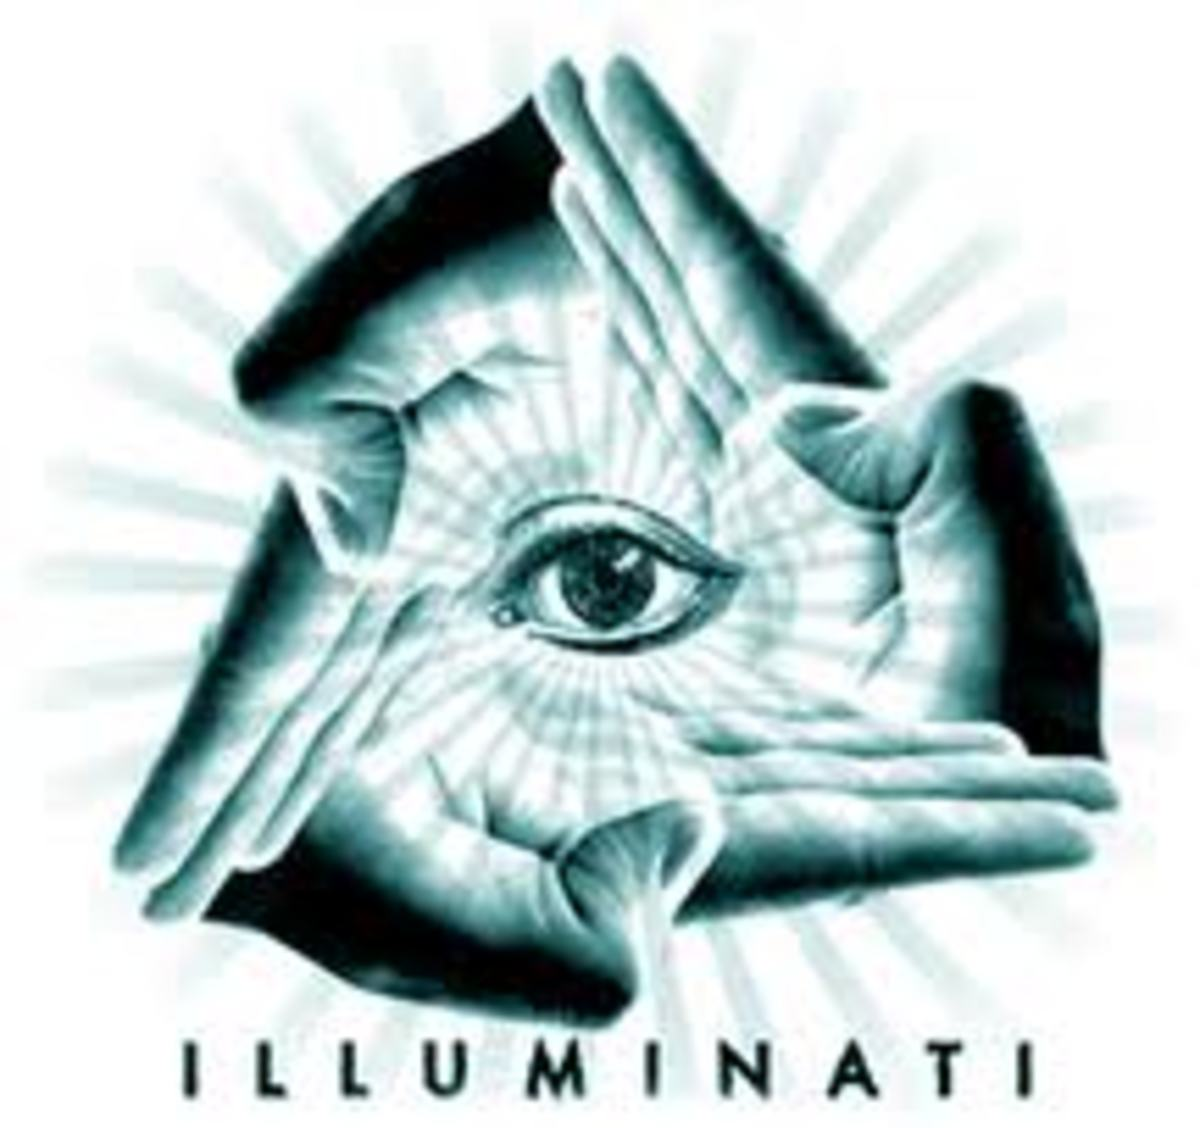 What Is The ILLUMINATI? Are They Real? Does The Illuminati Control The World? What Is The History Of The Illuminati?